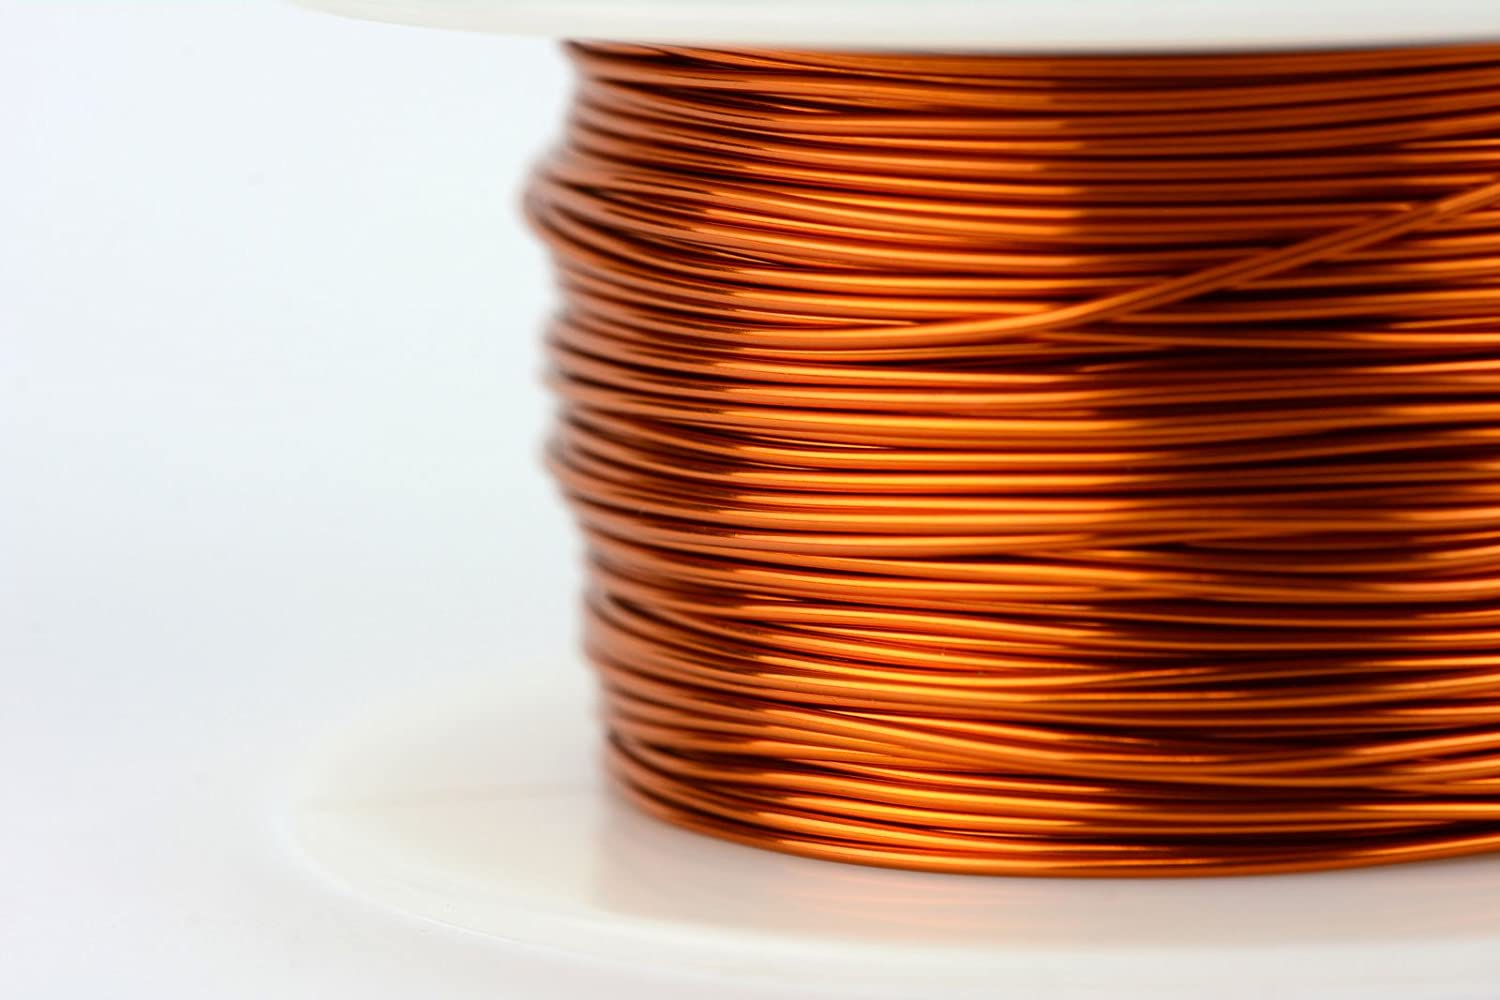 8 oz 198 ft 200/°C Magnetic Coil Winding TEMCo 21 AWG Copper Magnet Wire